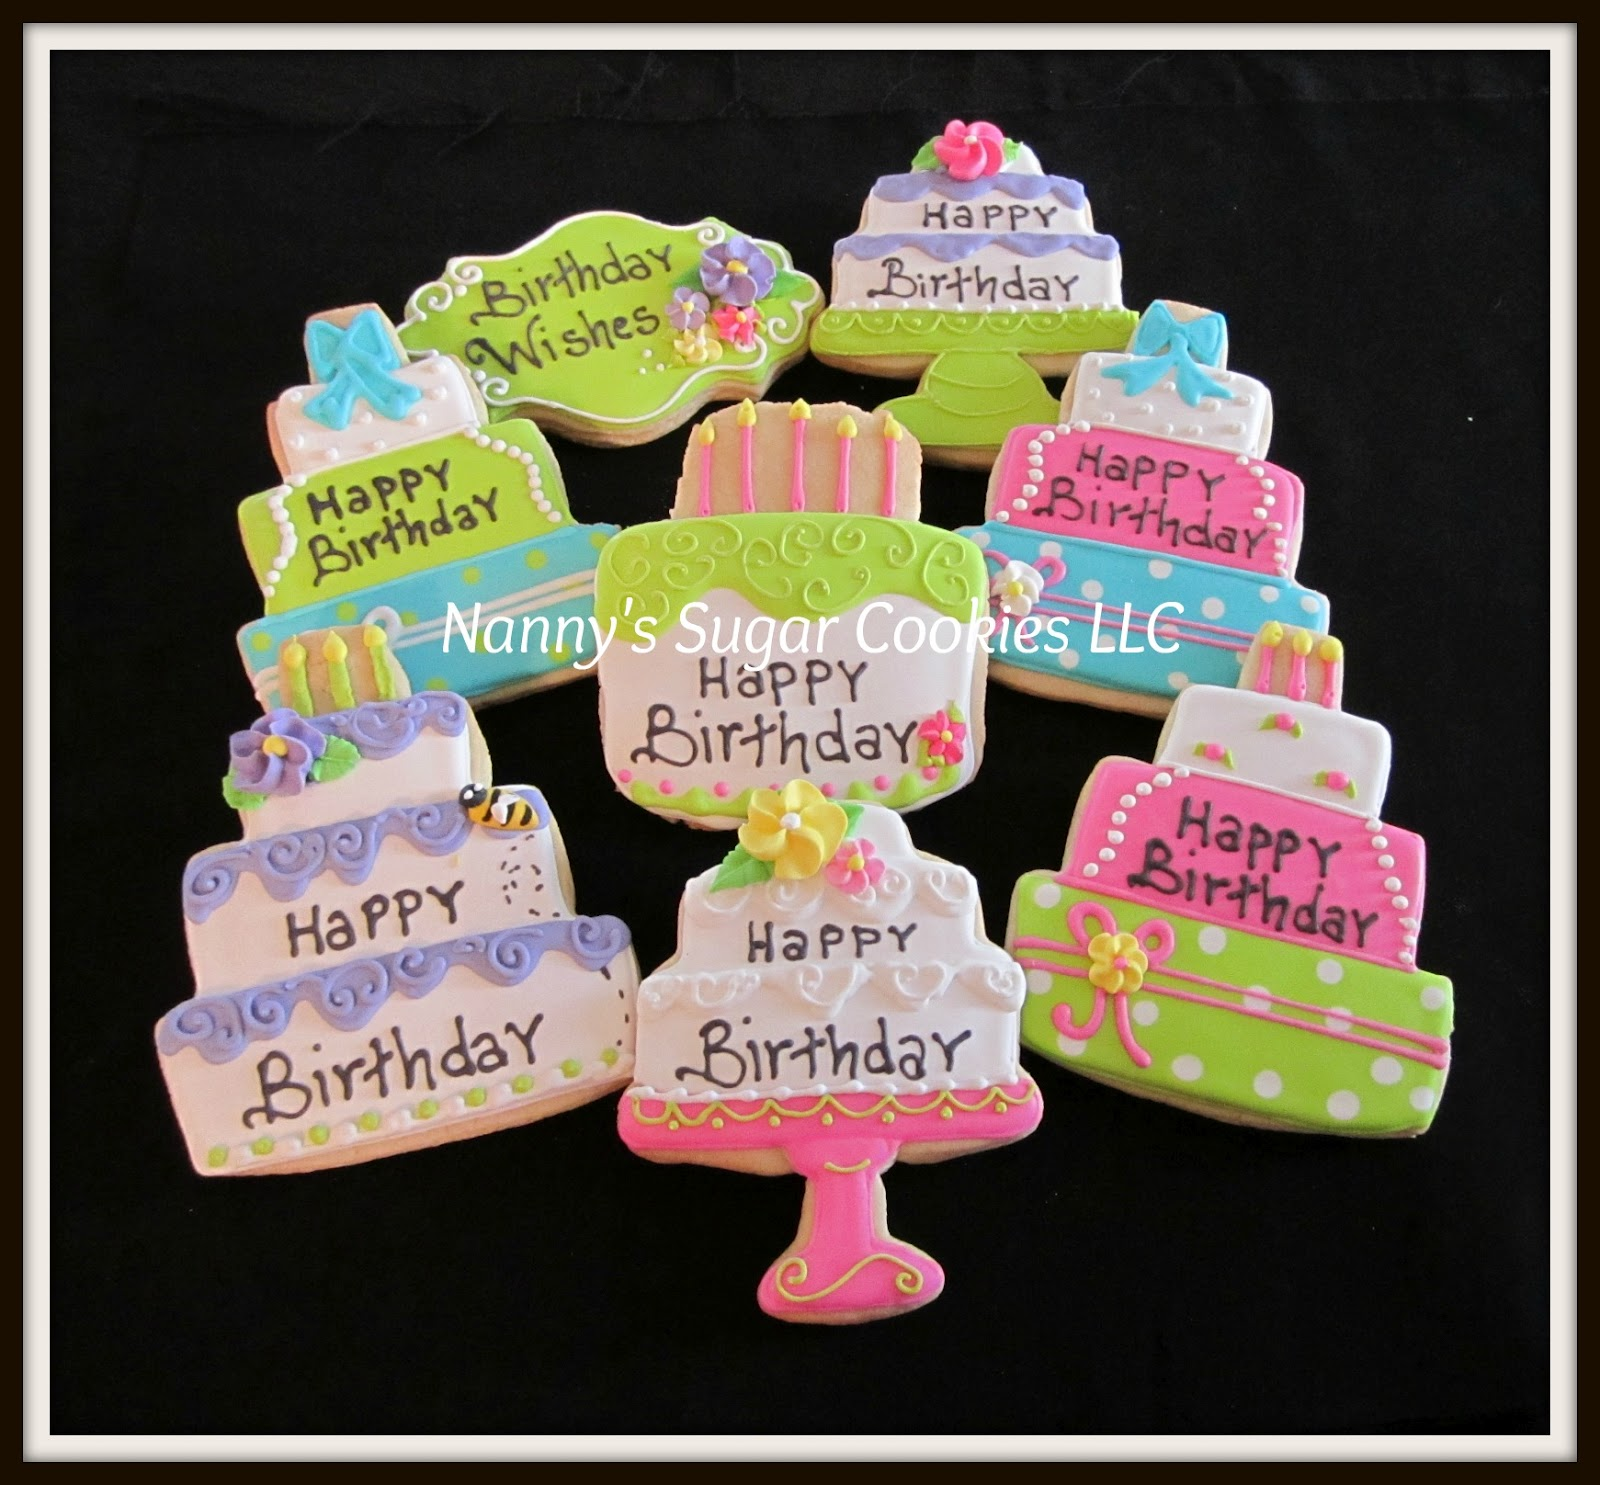 Nanny's Sugar Cookies LLC: Happy Birthday